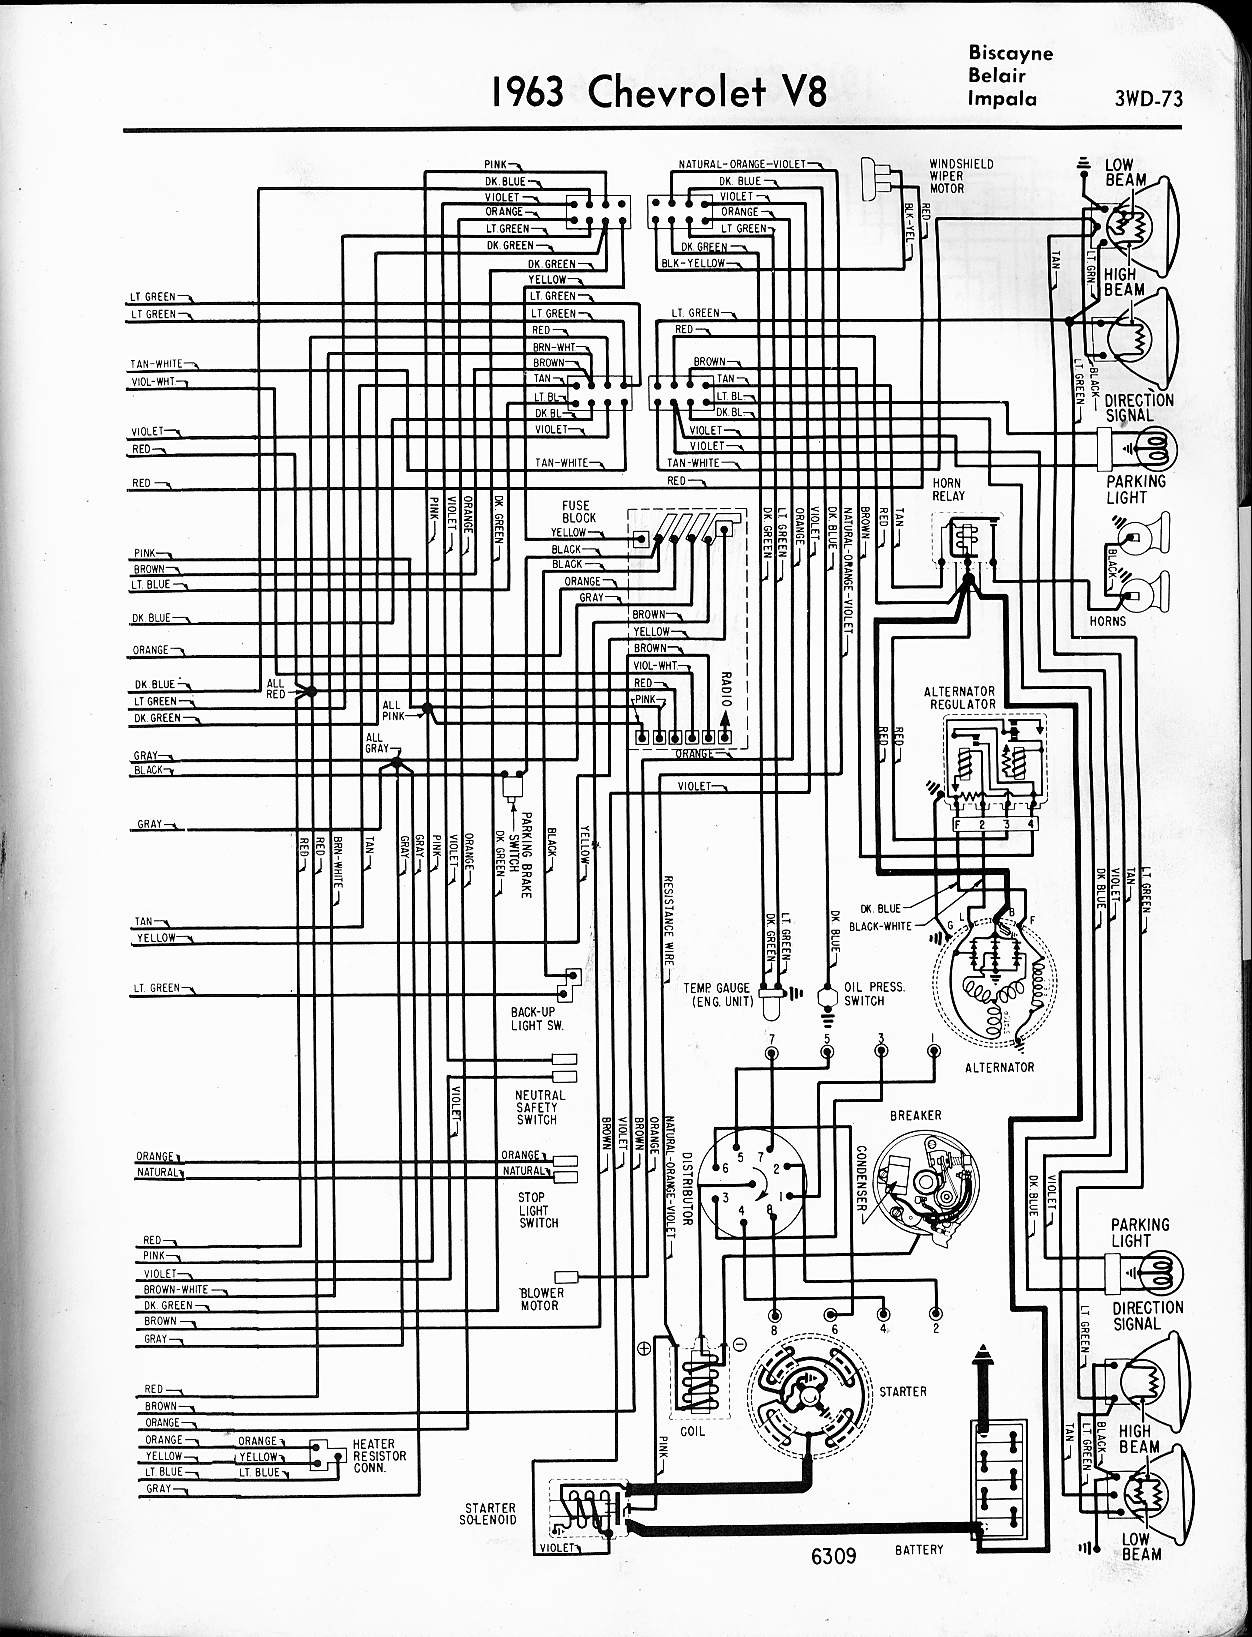 2006 Chevy Impala Engine Diagram 57 65 Wiring Diagrams My Chevrolet